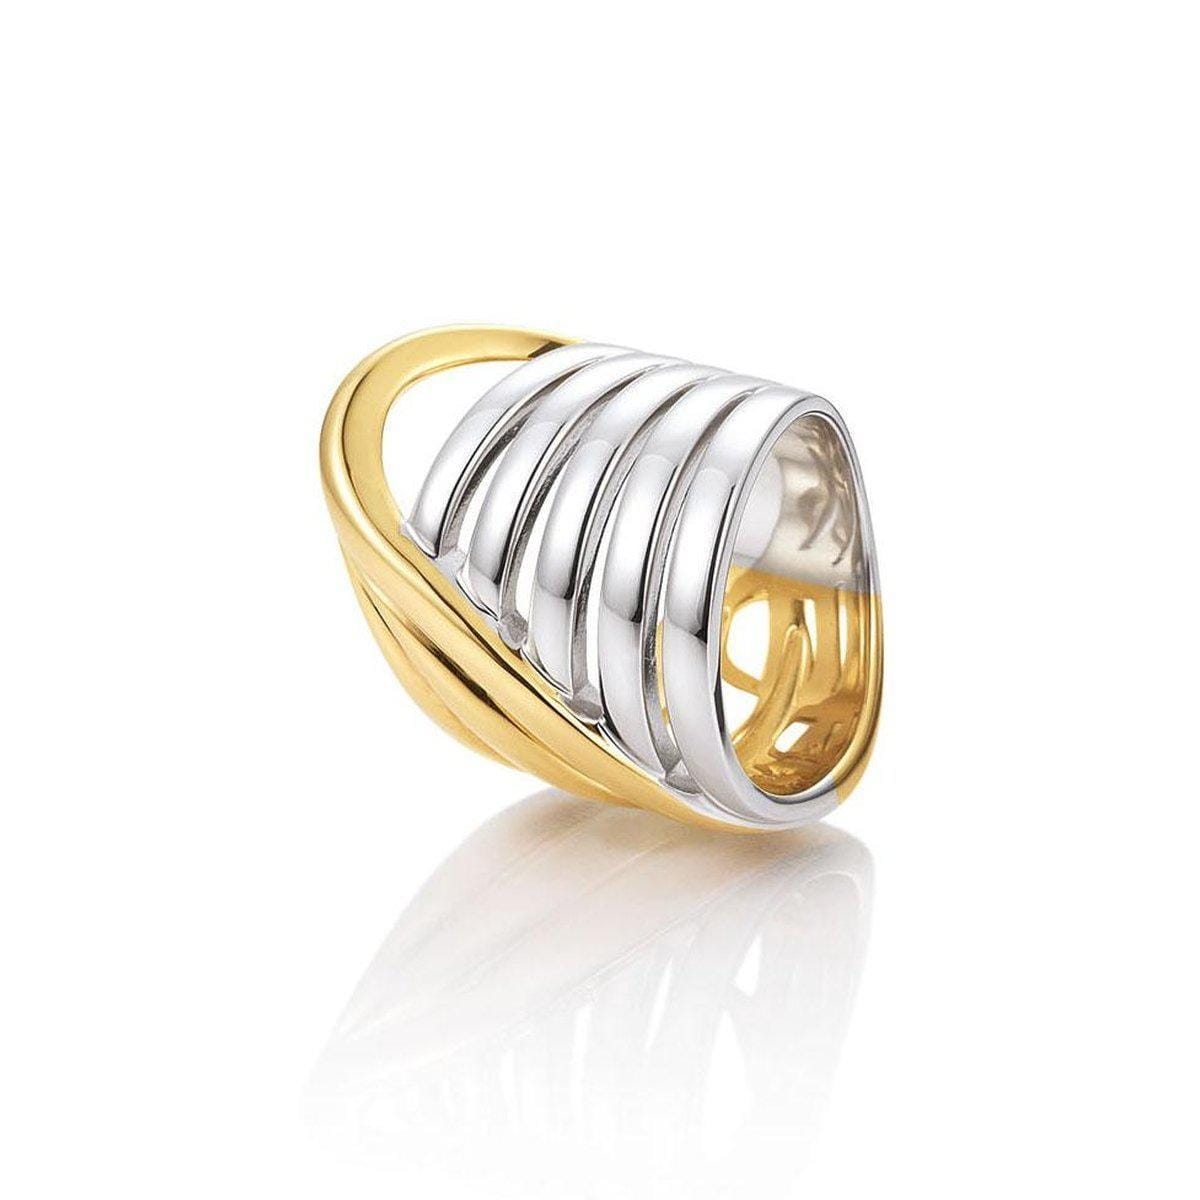 Yellow Gold & Rhodium Plated Sterling Silver Ring - 44/01424-Breuning-Renee Taylor Gallery